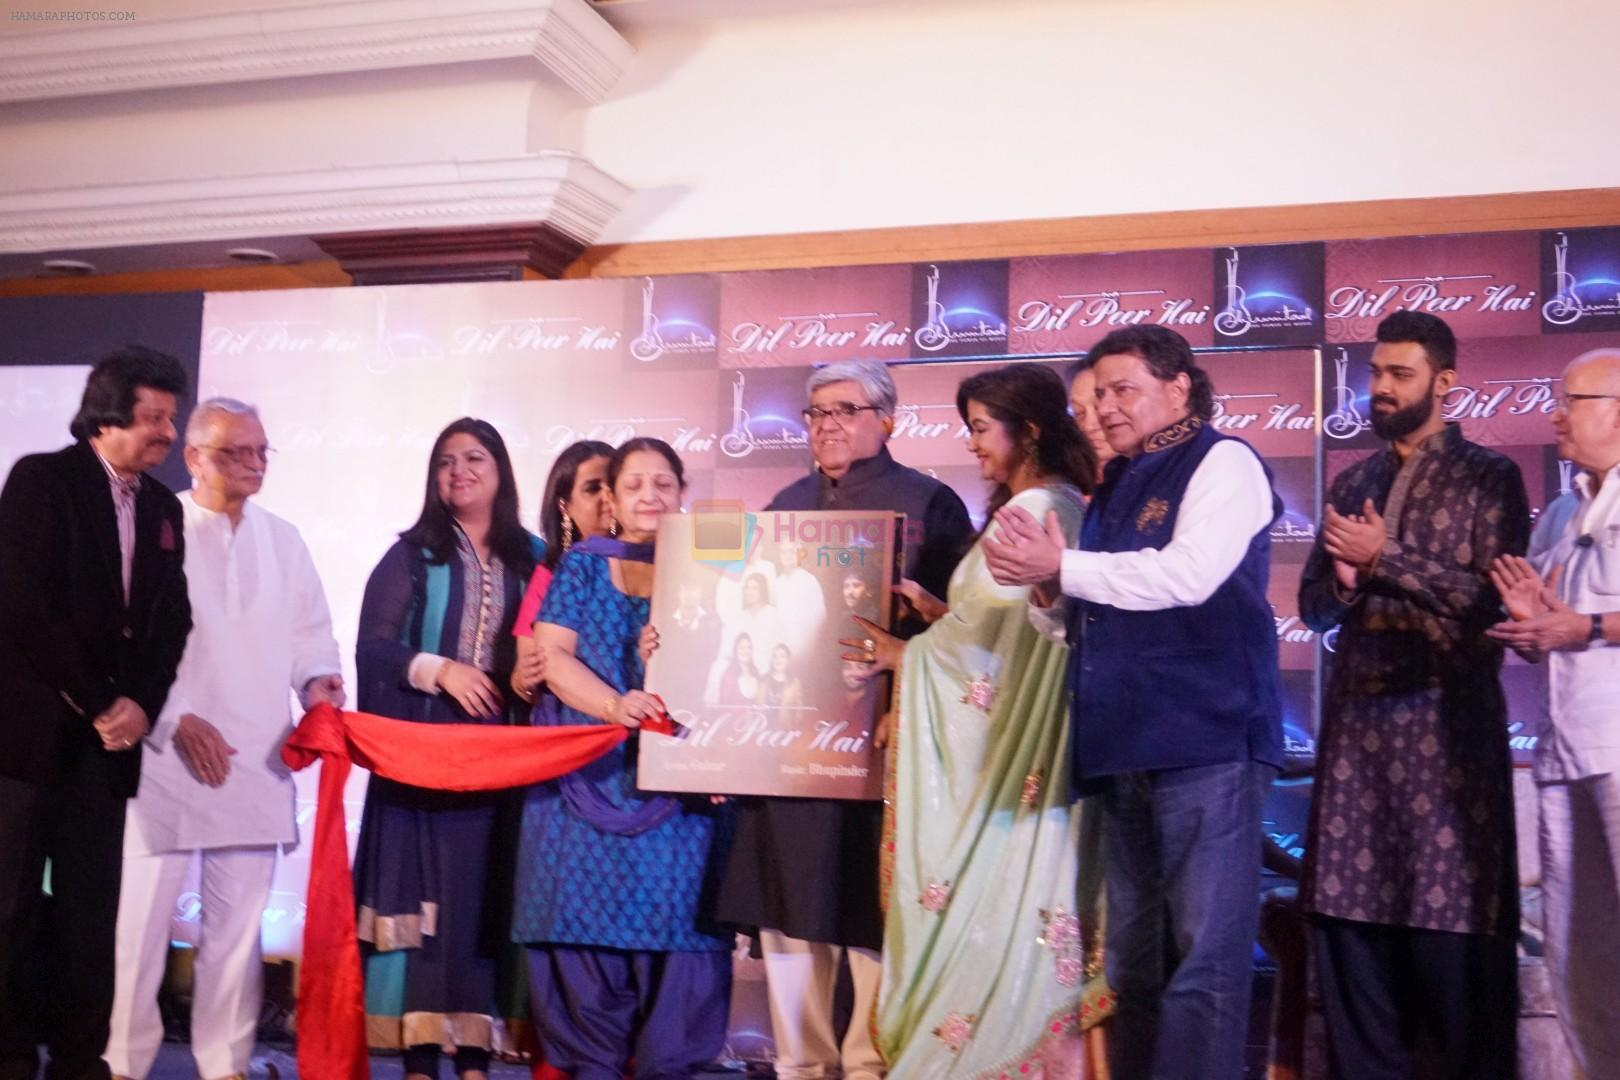 Gulzar, Anup Jalota, Pankaj Udhas, Bhupinder Singh, Mitali, Nihal Singh at the Launch Of Bhupinder-Mitali Latest Maiden Album on 7th Oct 2017